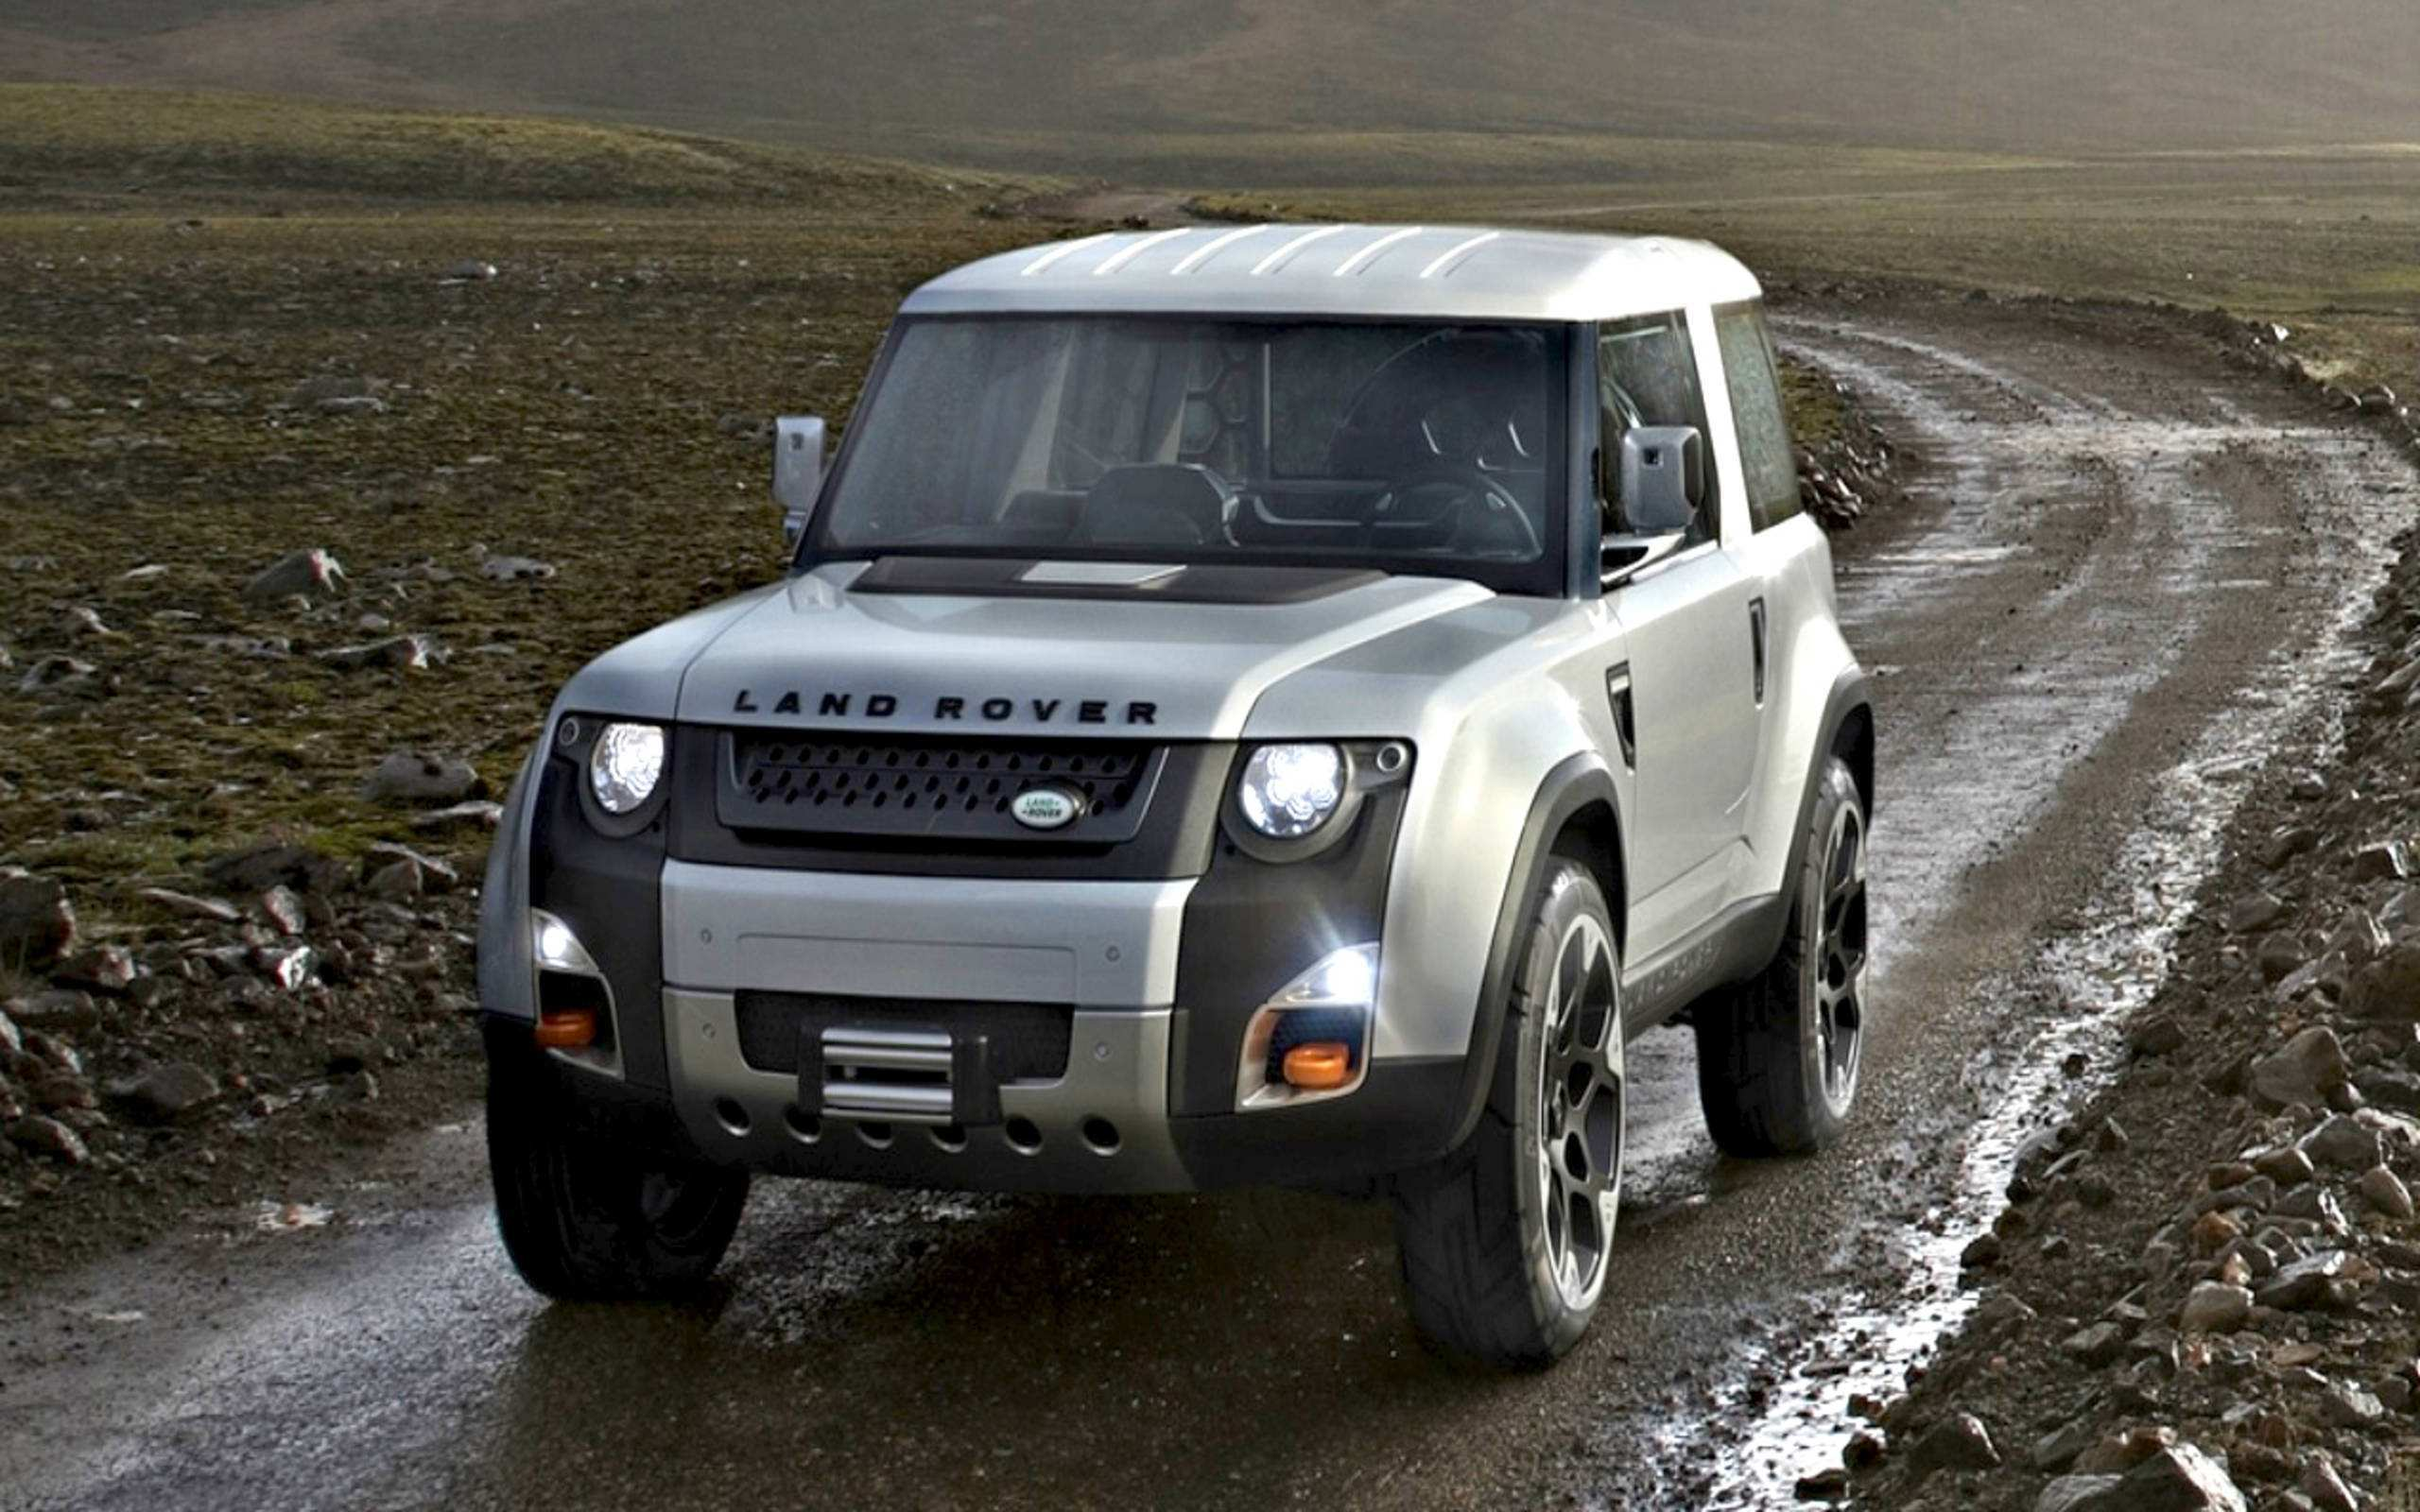 62 All New 2019 Land Rover Lineup Configurations